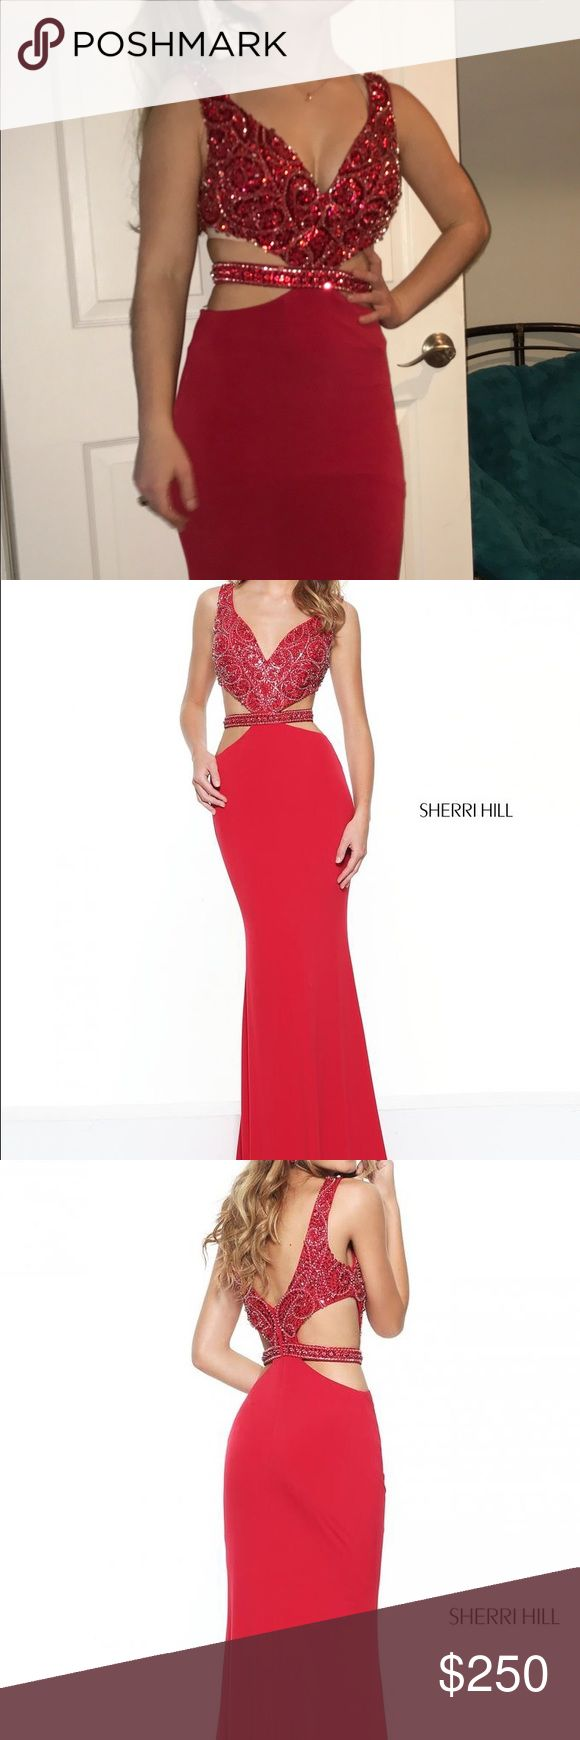 Missed the return date This never-worn prom dress is in perfect condition. Size 2: Fitted jersey with a beaded bodice and cut out sides. Originally $398.00. Willing to negotiate price. Sherri Hill Dresses Prom